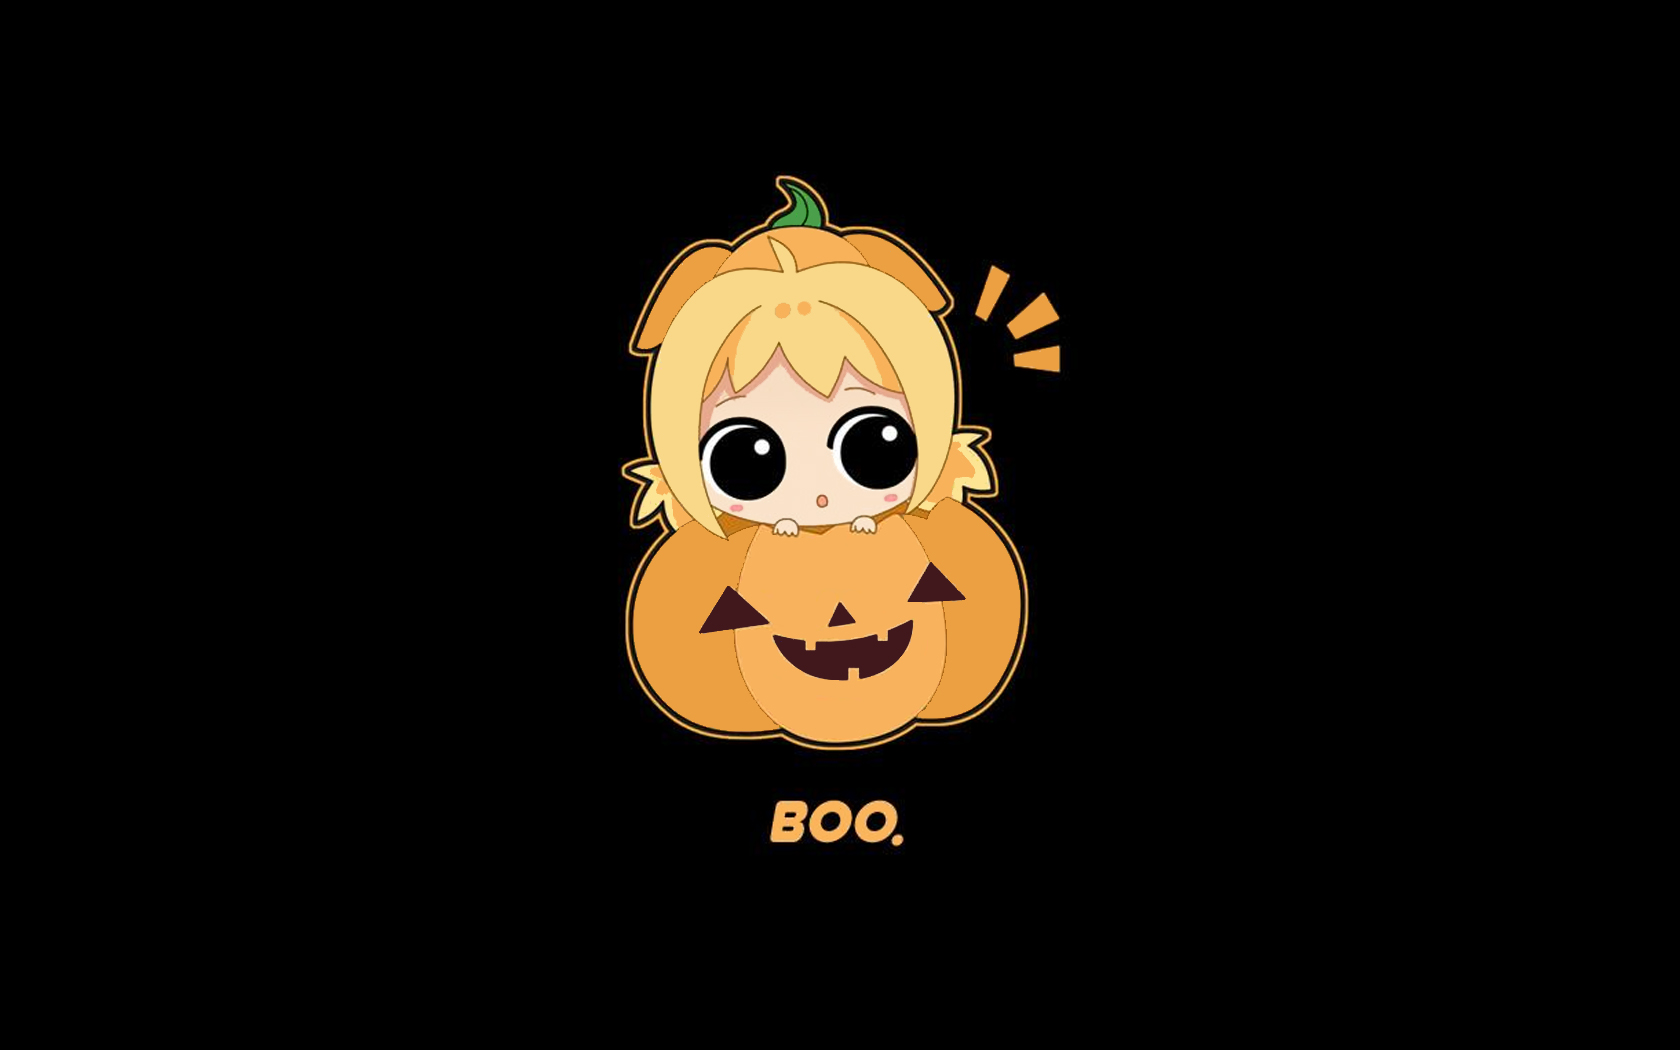 Cute Halloween Wallpaper 15759 1680x1050 px ~ HDWallSource.com